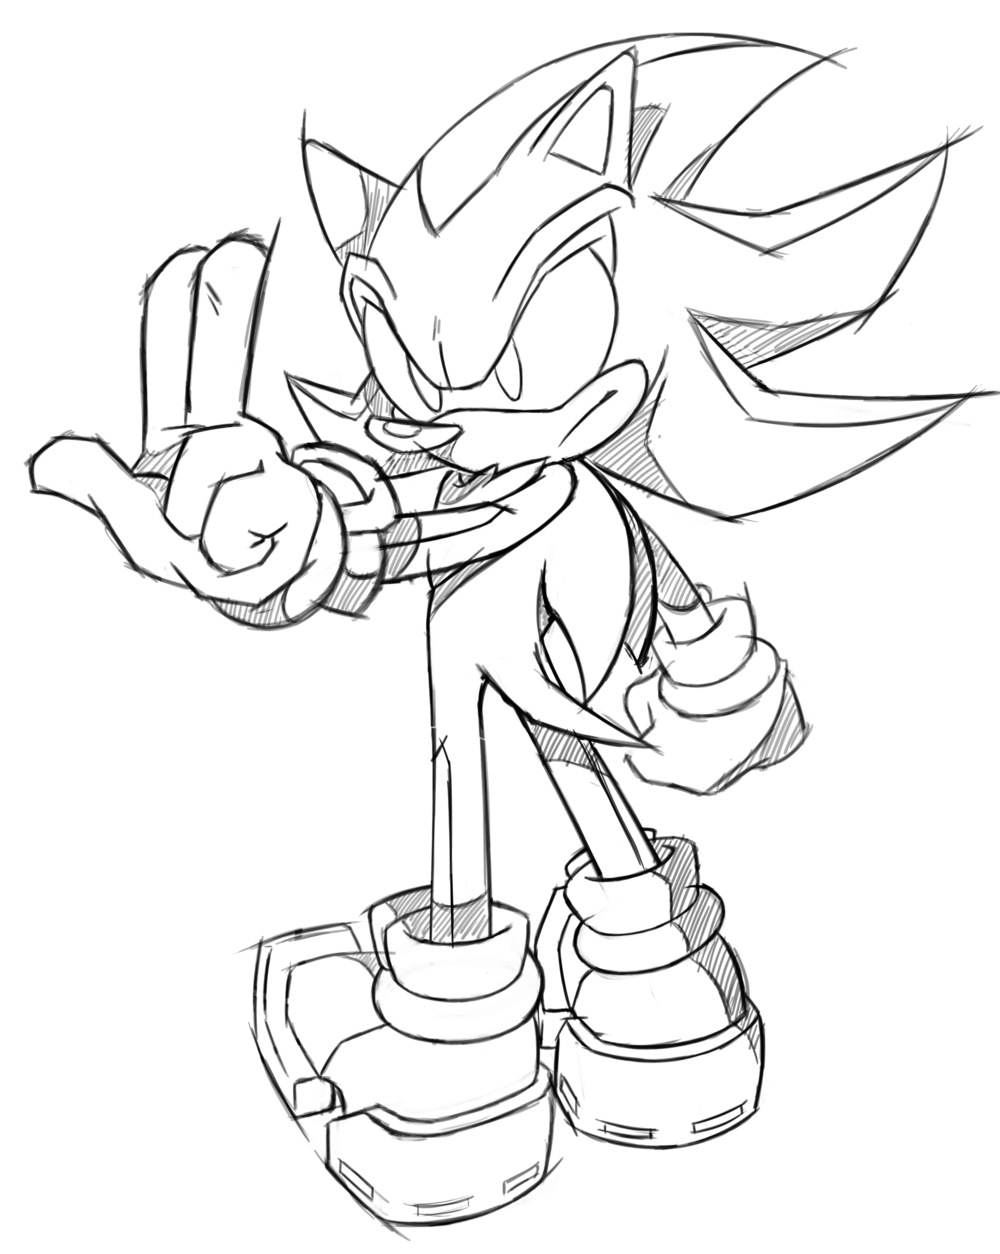 Shadow 2015_sketch.png